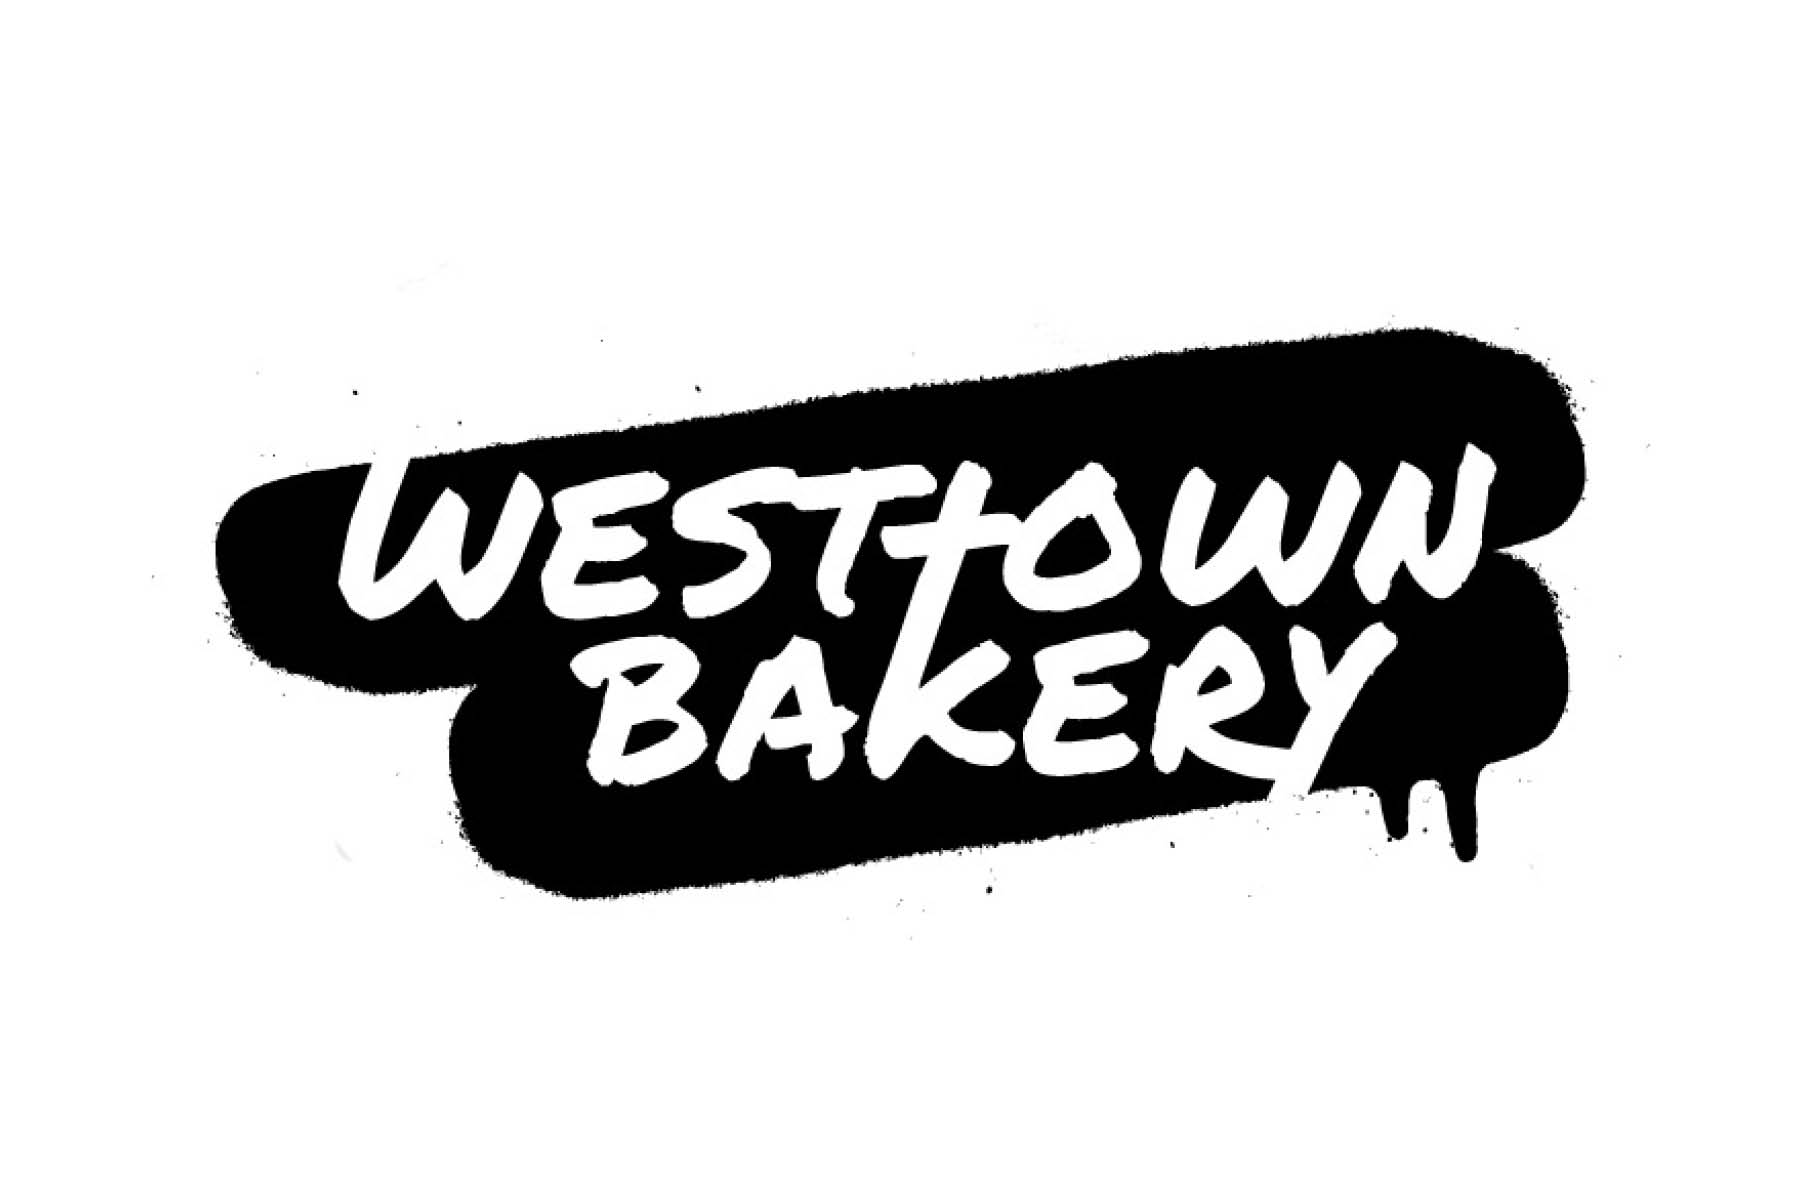 Westown Bakery.jpg